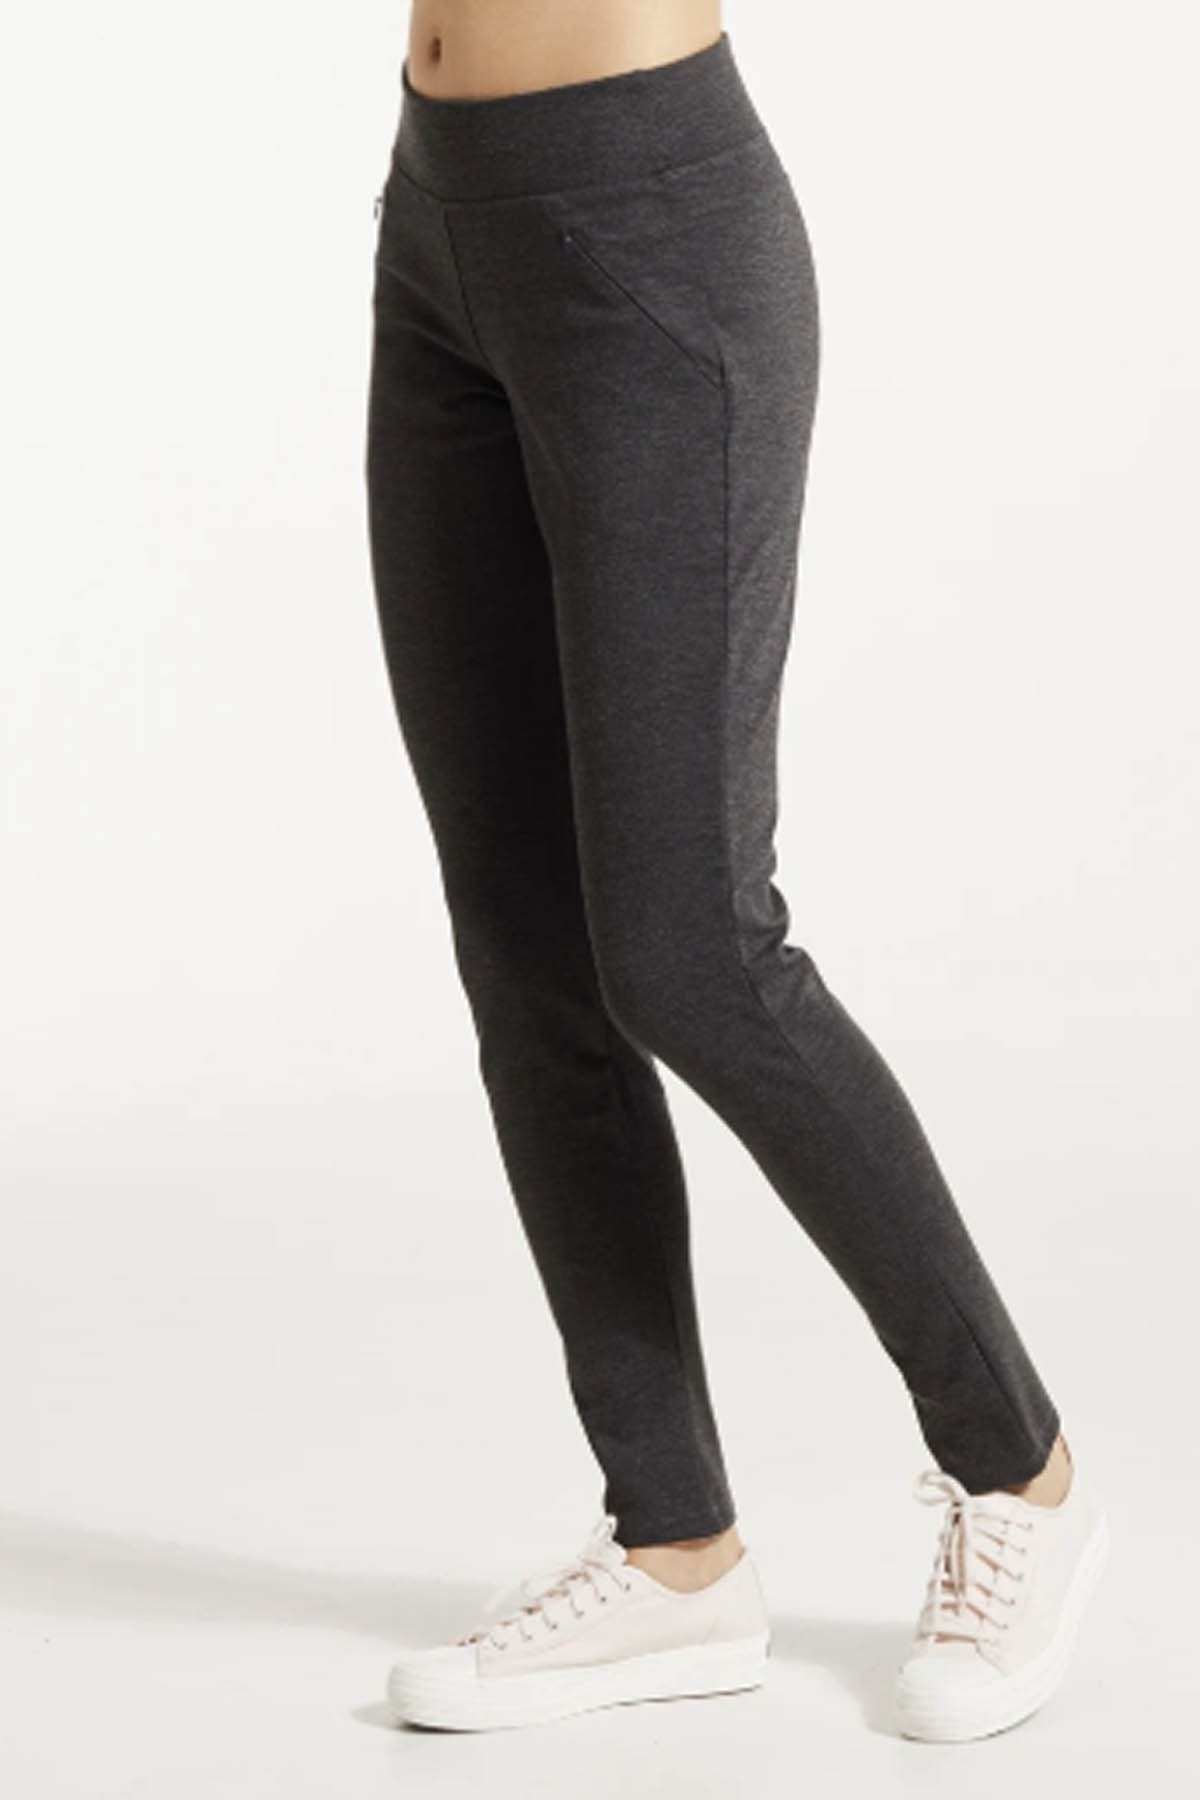 SOZ Pants by FIG Clothing, Wolf, semi-fitted leg, elastic waist, mid-rise, front slant pockets with invisible zippers, ponte di roma fabric, sizes XS to XL, made in Canada